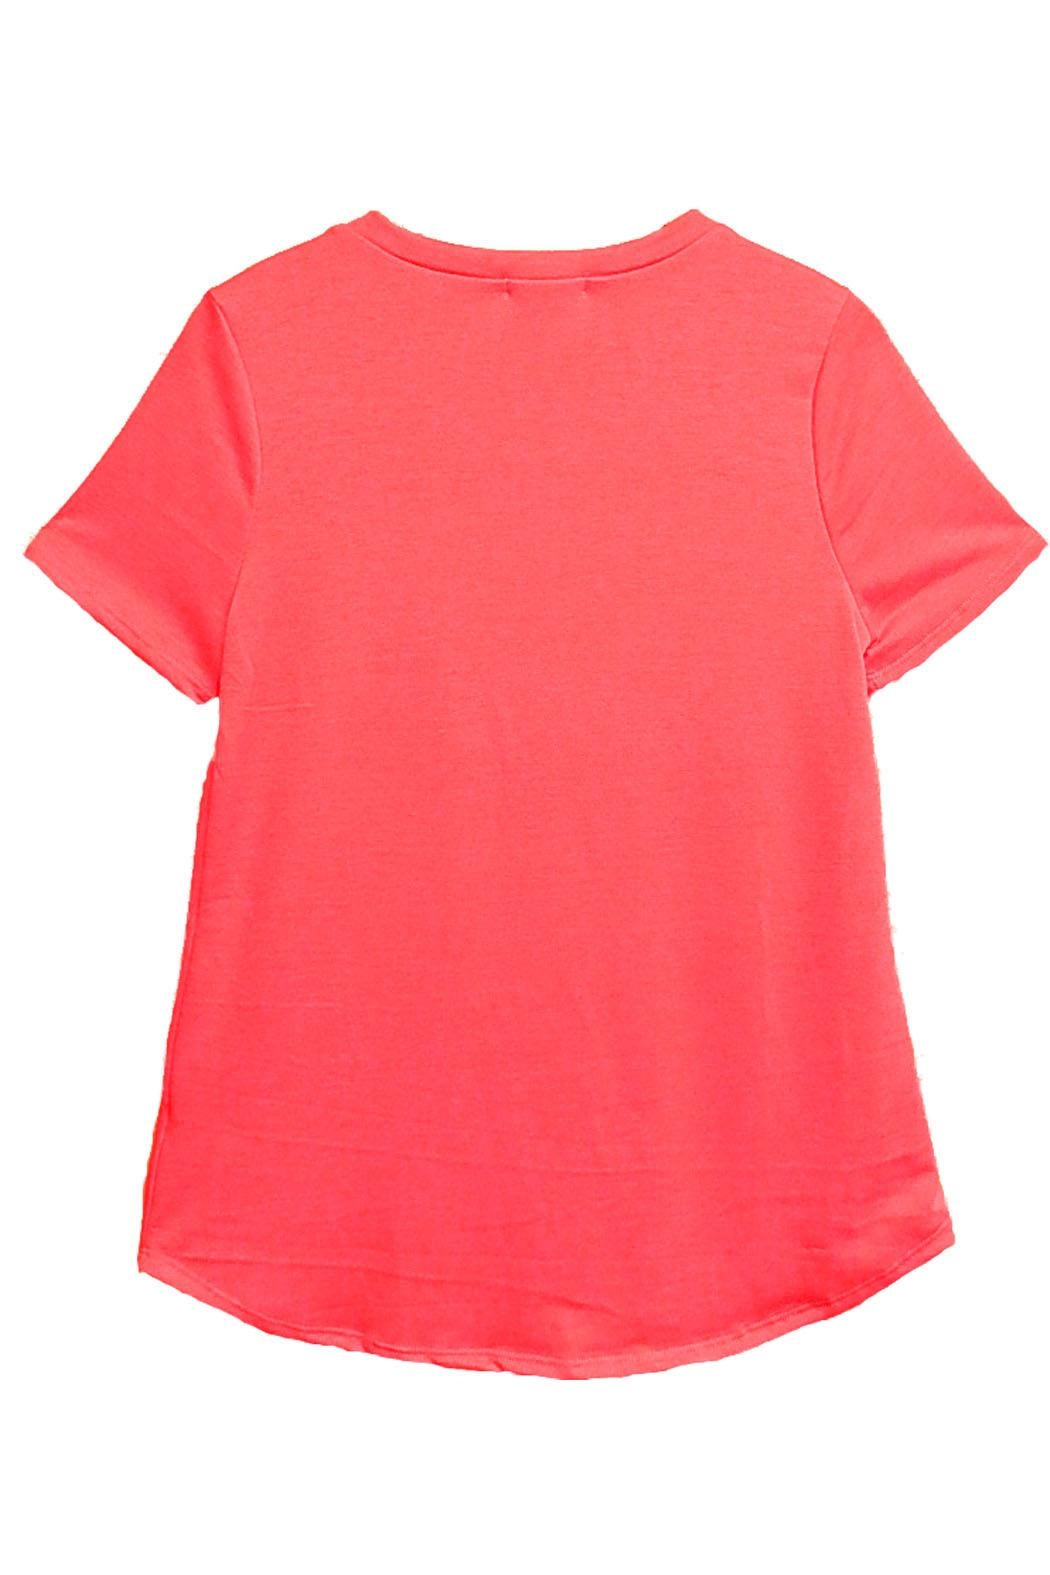 12pm by Mon Ami Coral Flamingo Top - Front Full Image